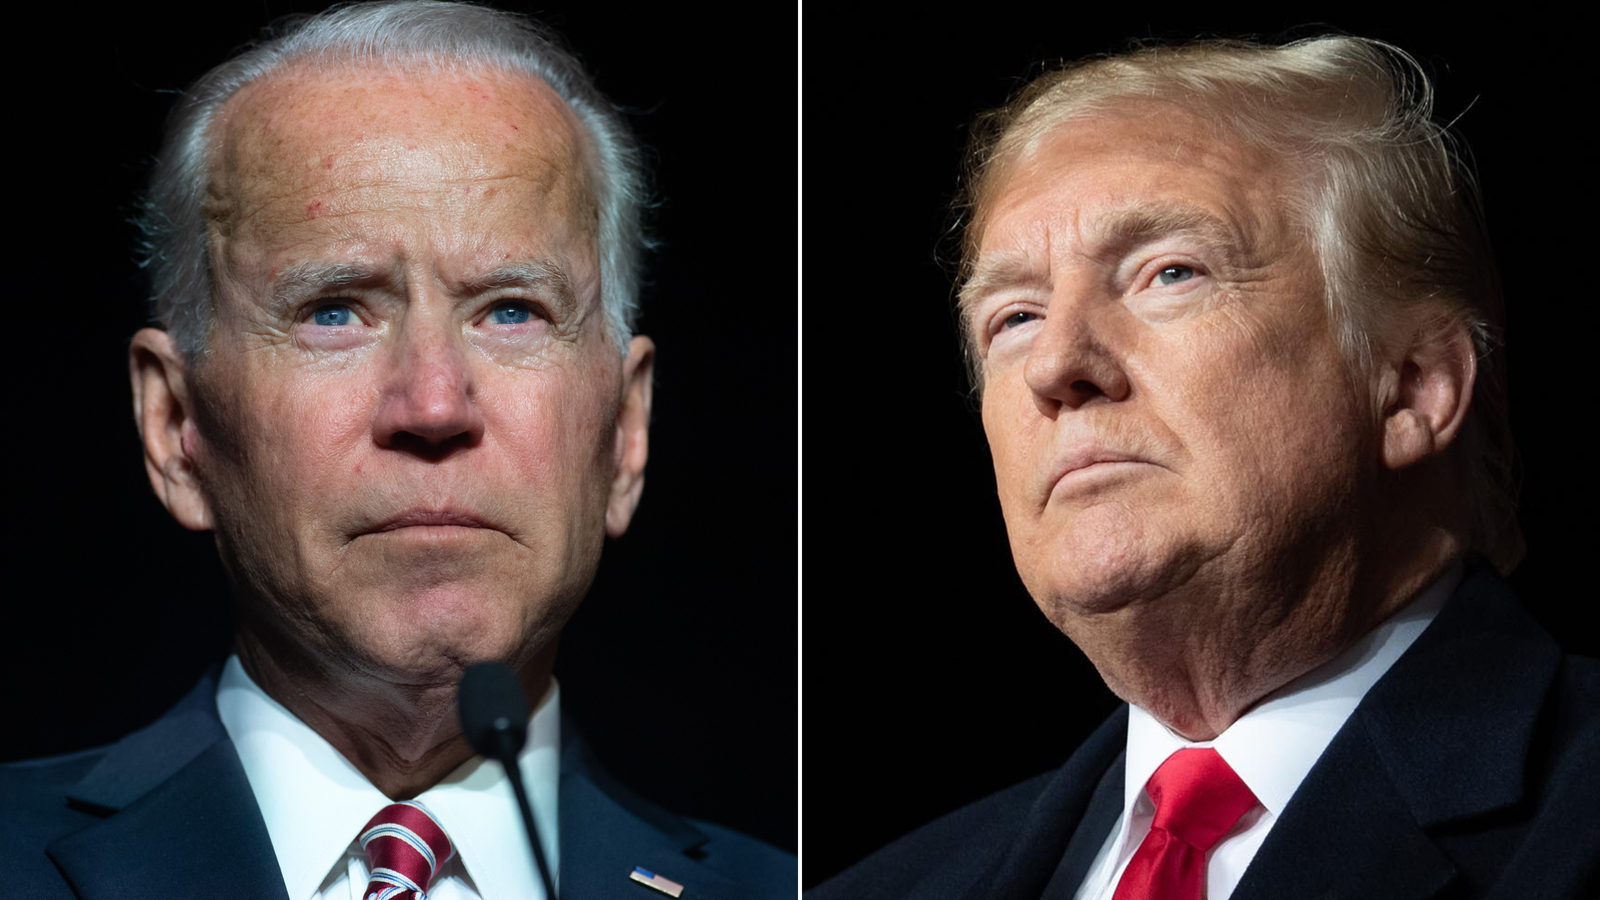 No debate handshake for Biden, Trump. First presidential showdown adapts to Covid-19